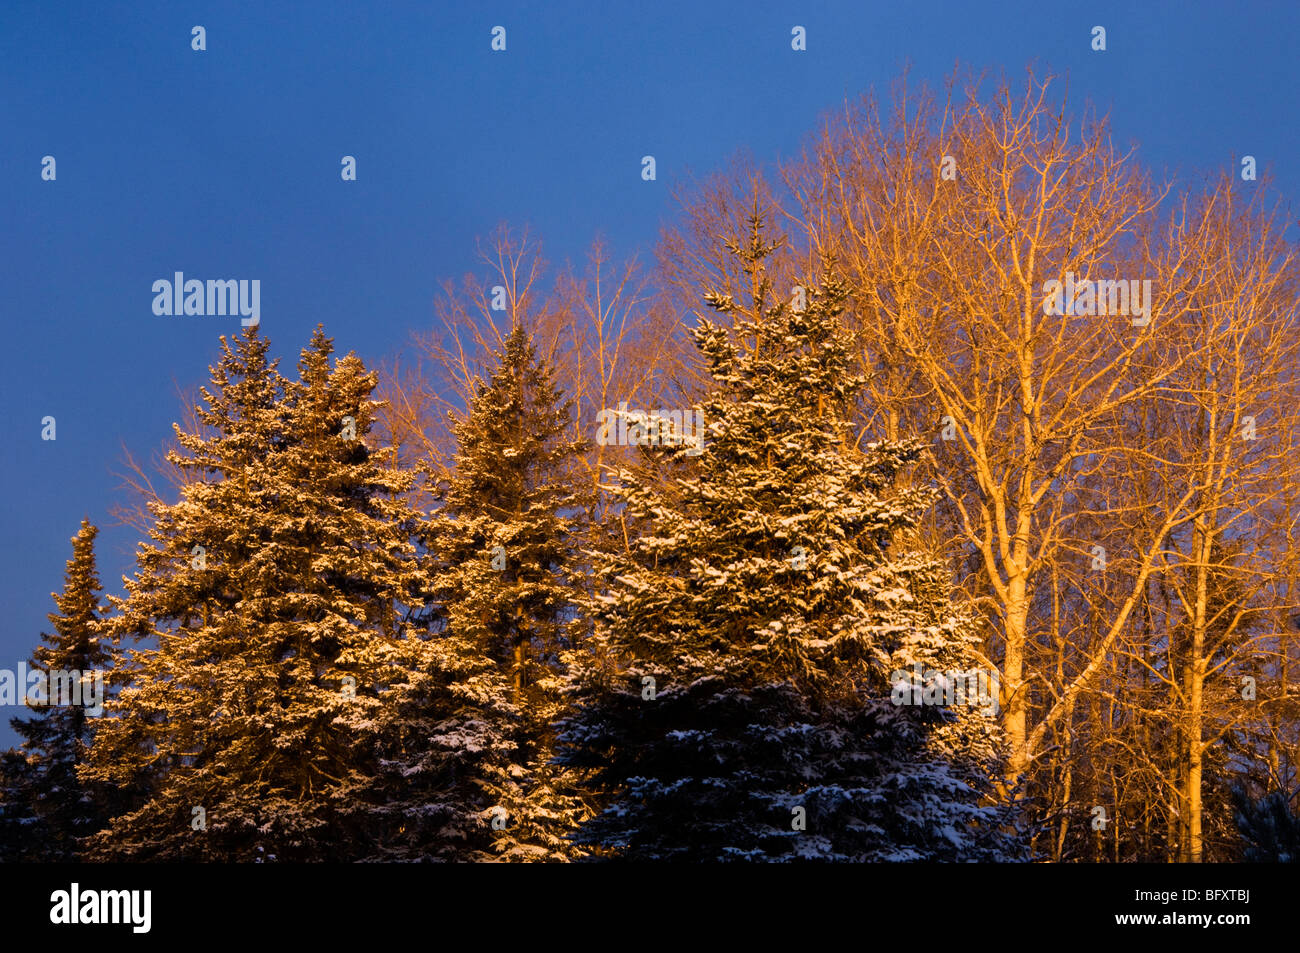 Spruces and aspens with light snow, Greater Sudbury, Ontario, Canada - Stock Image